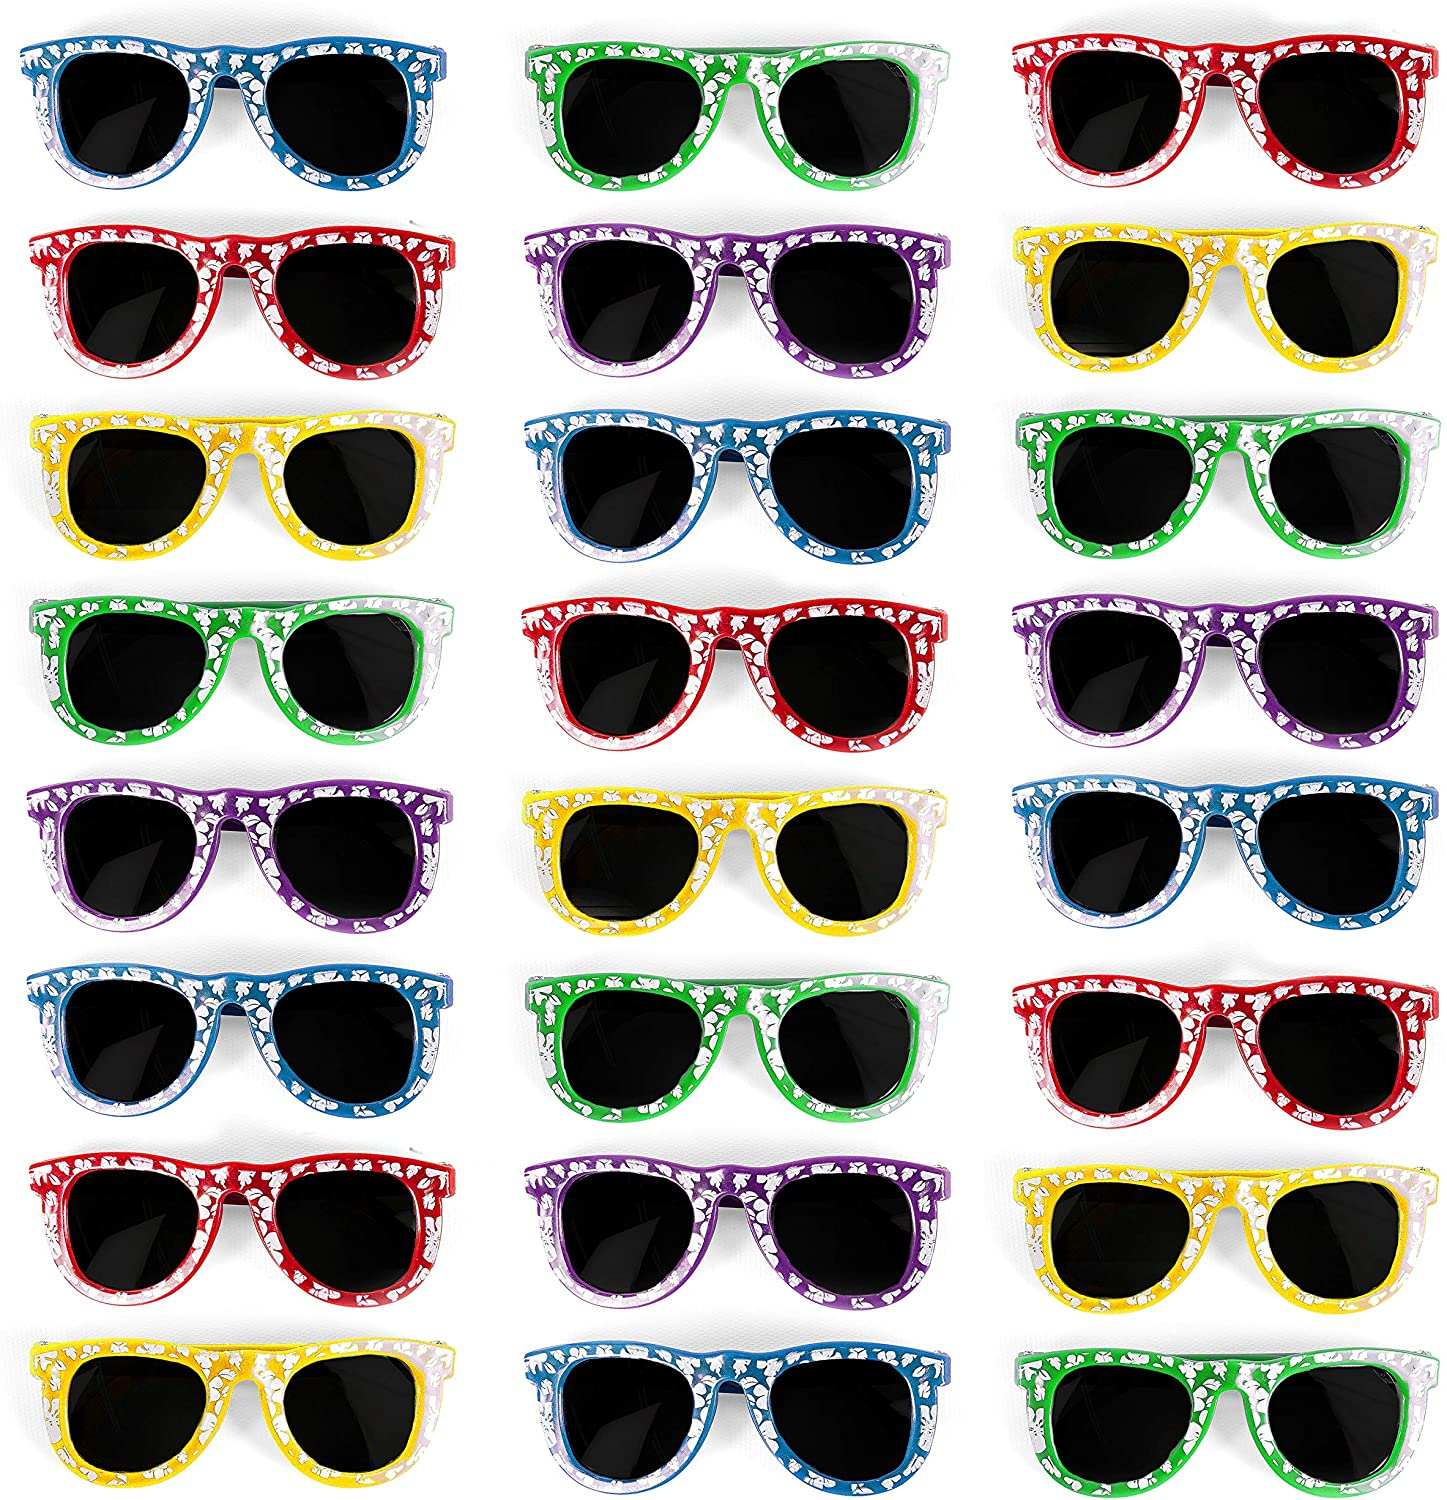 end-of-year-gifts-for-students-sunglasses